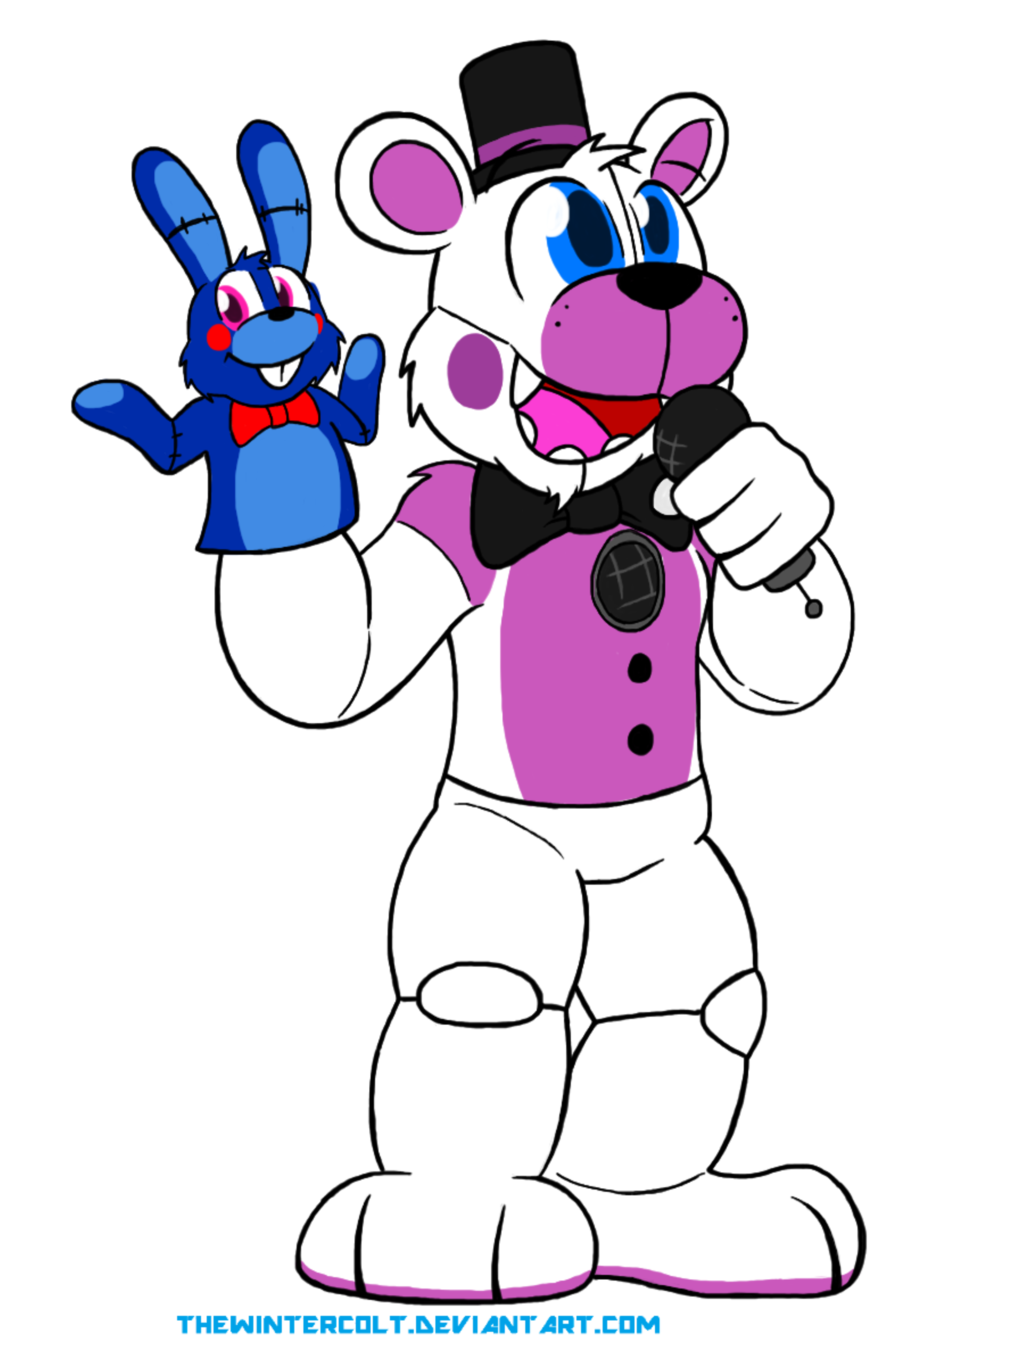 Funtime freddy by thewintercolt. Location clipart bad